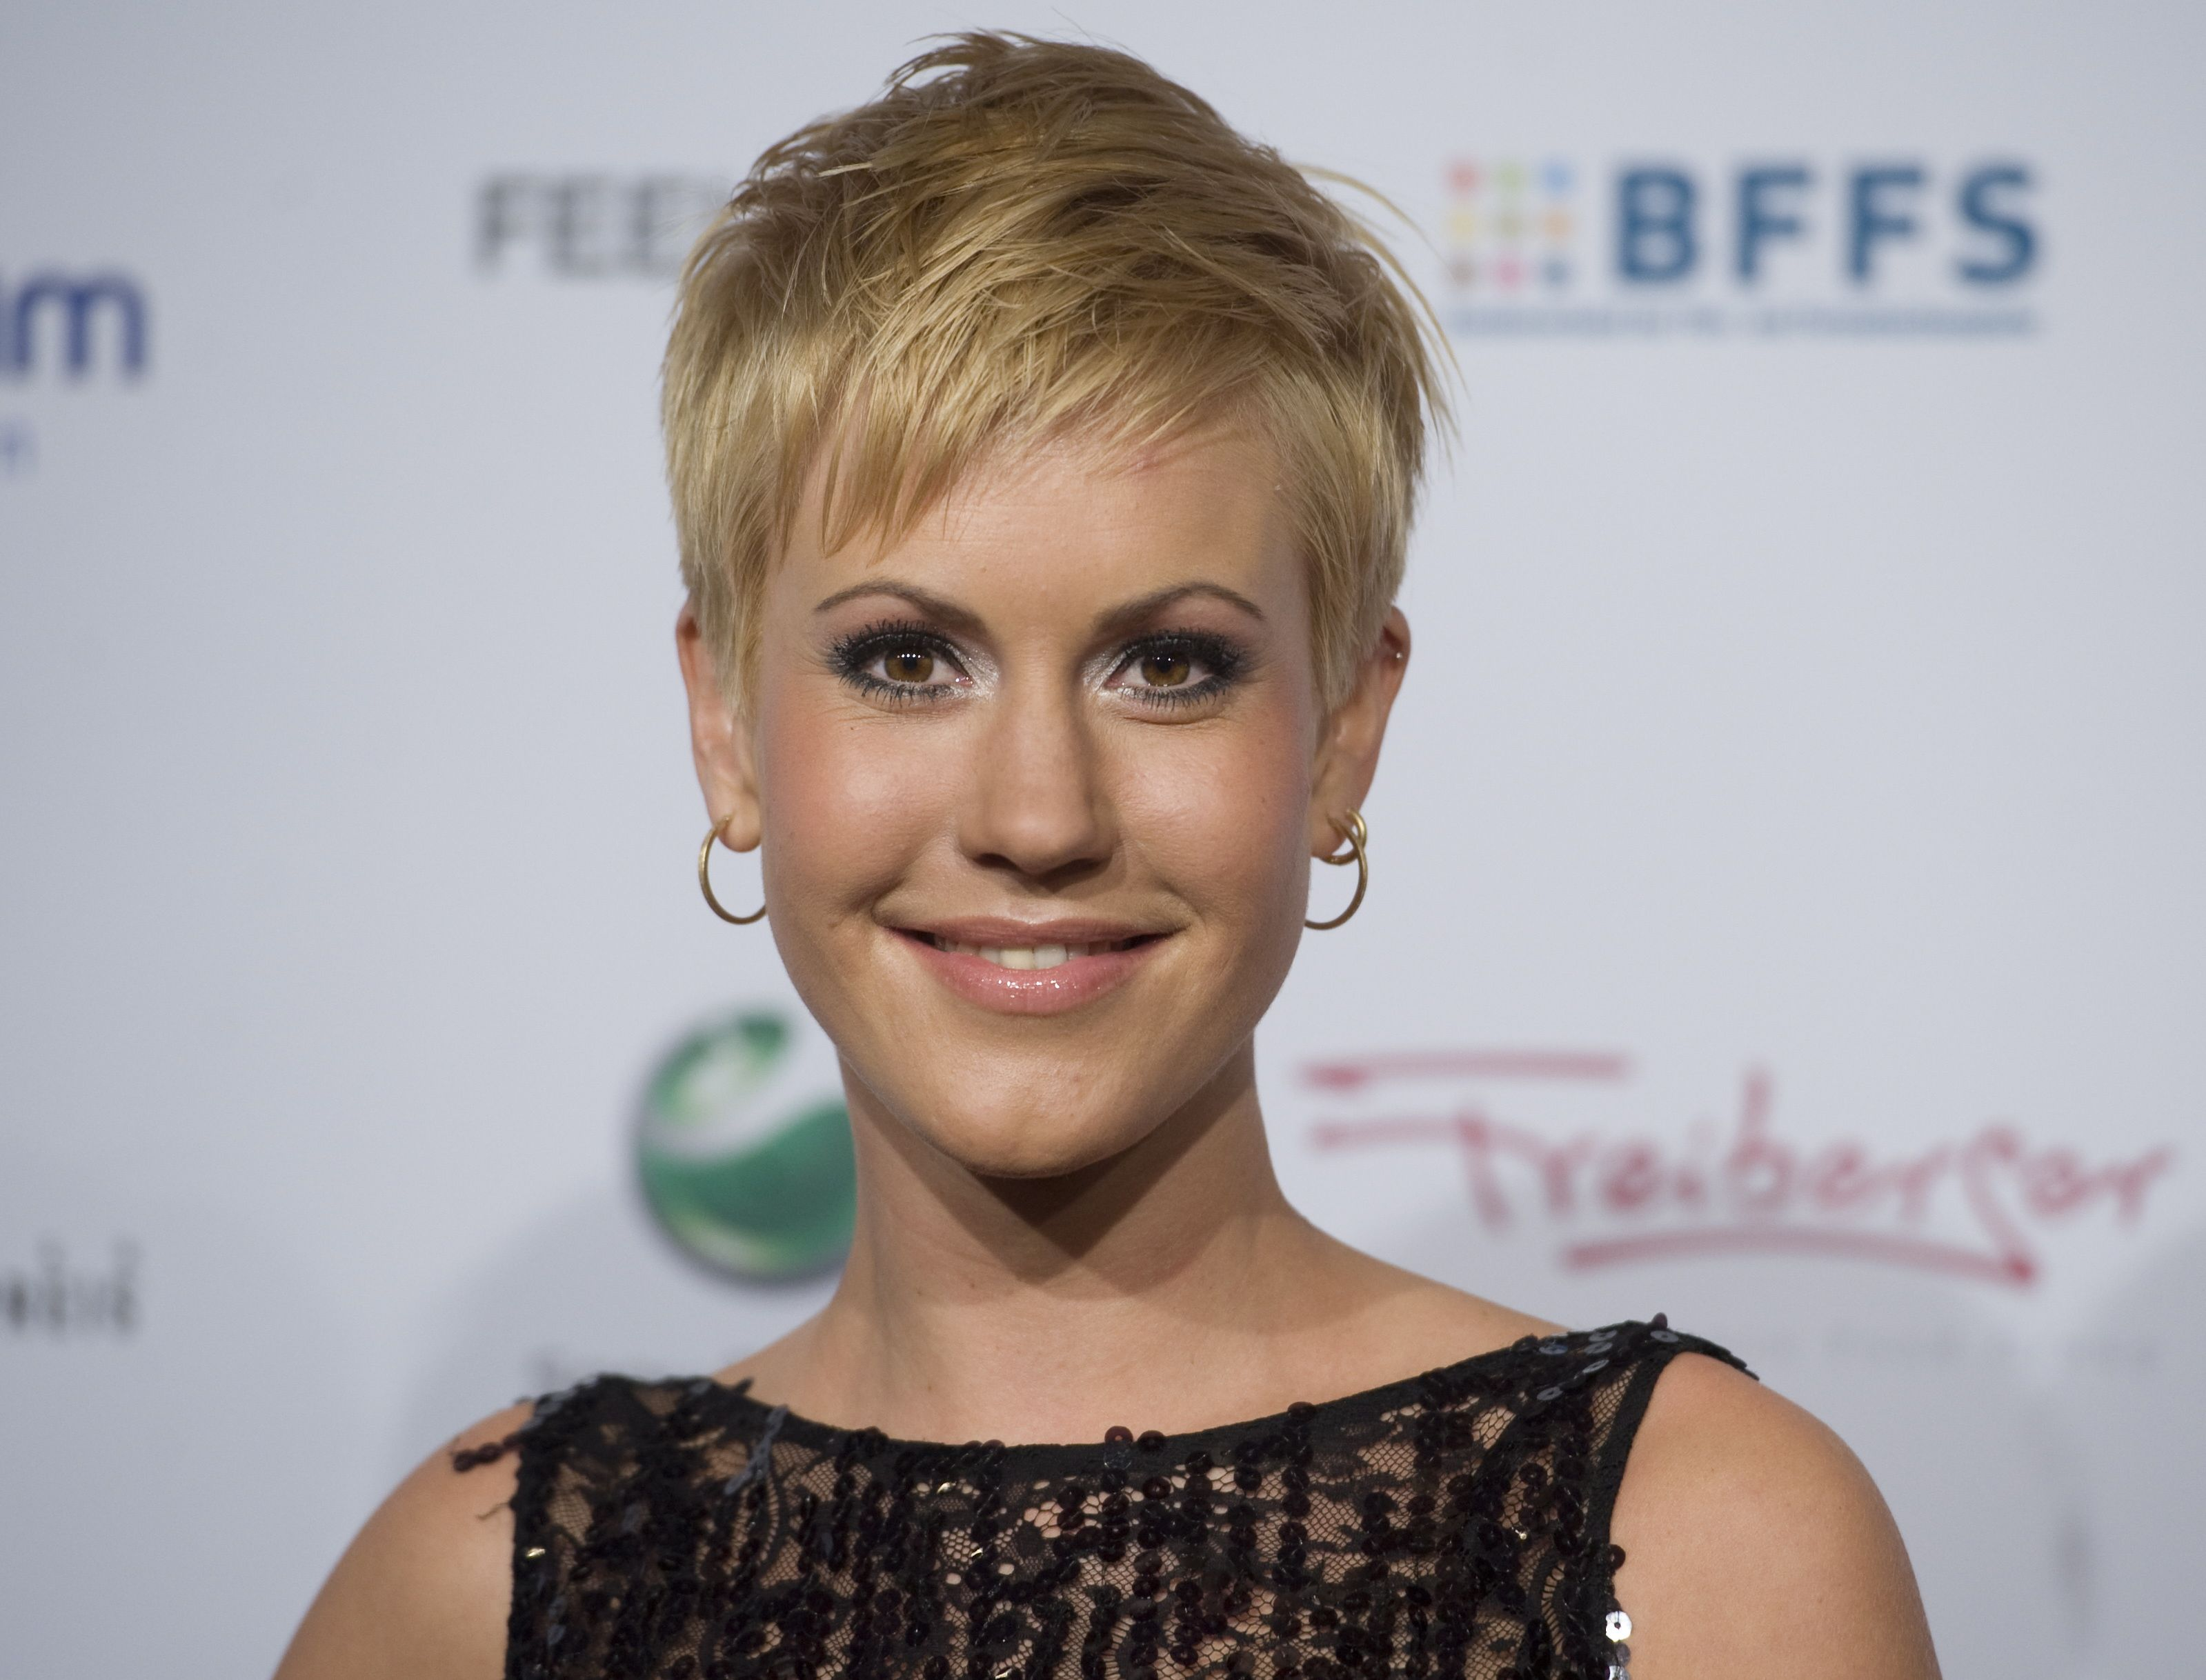 Wolke Hegenbarth Short Hair Google Search Wolke Hegenbarth Wolken Kurzhaarfrisuren